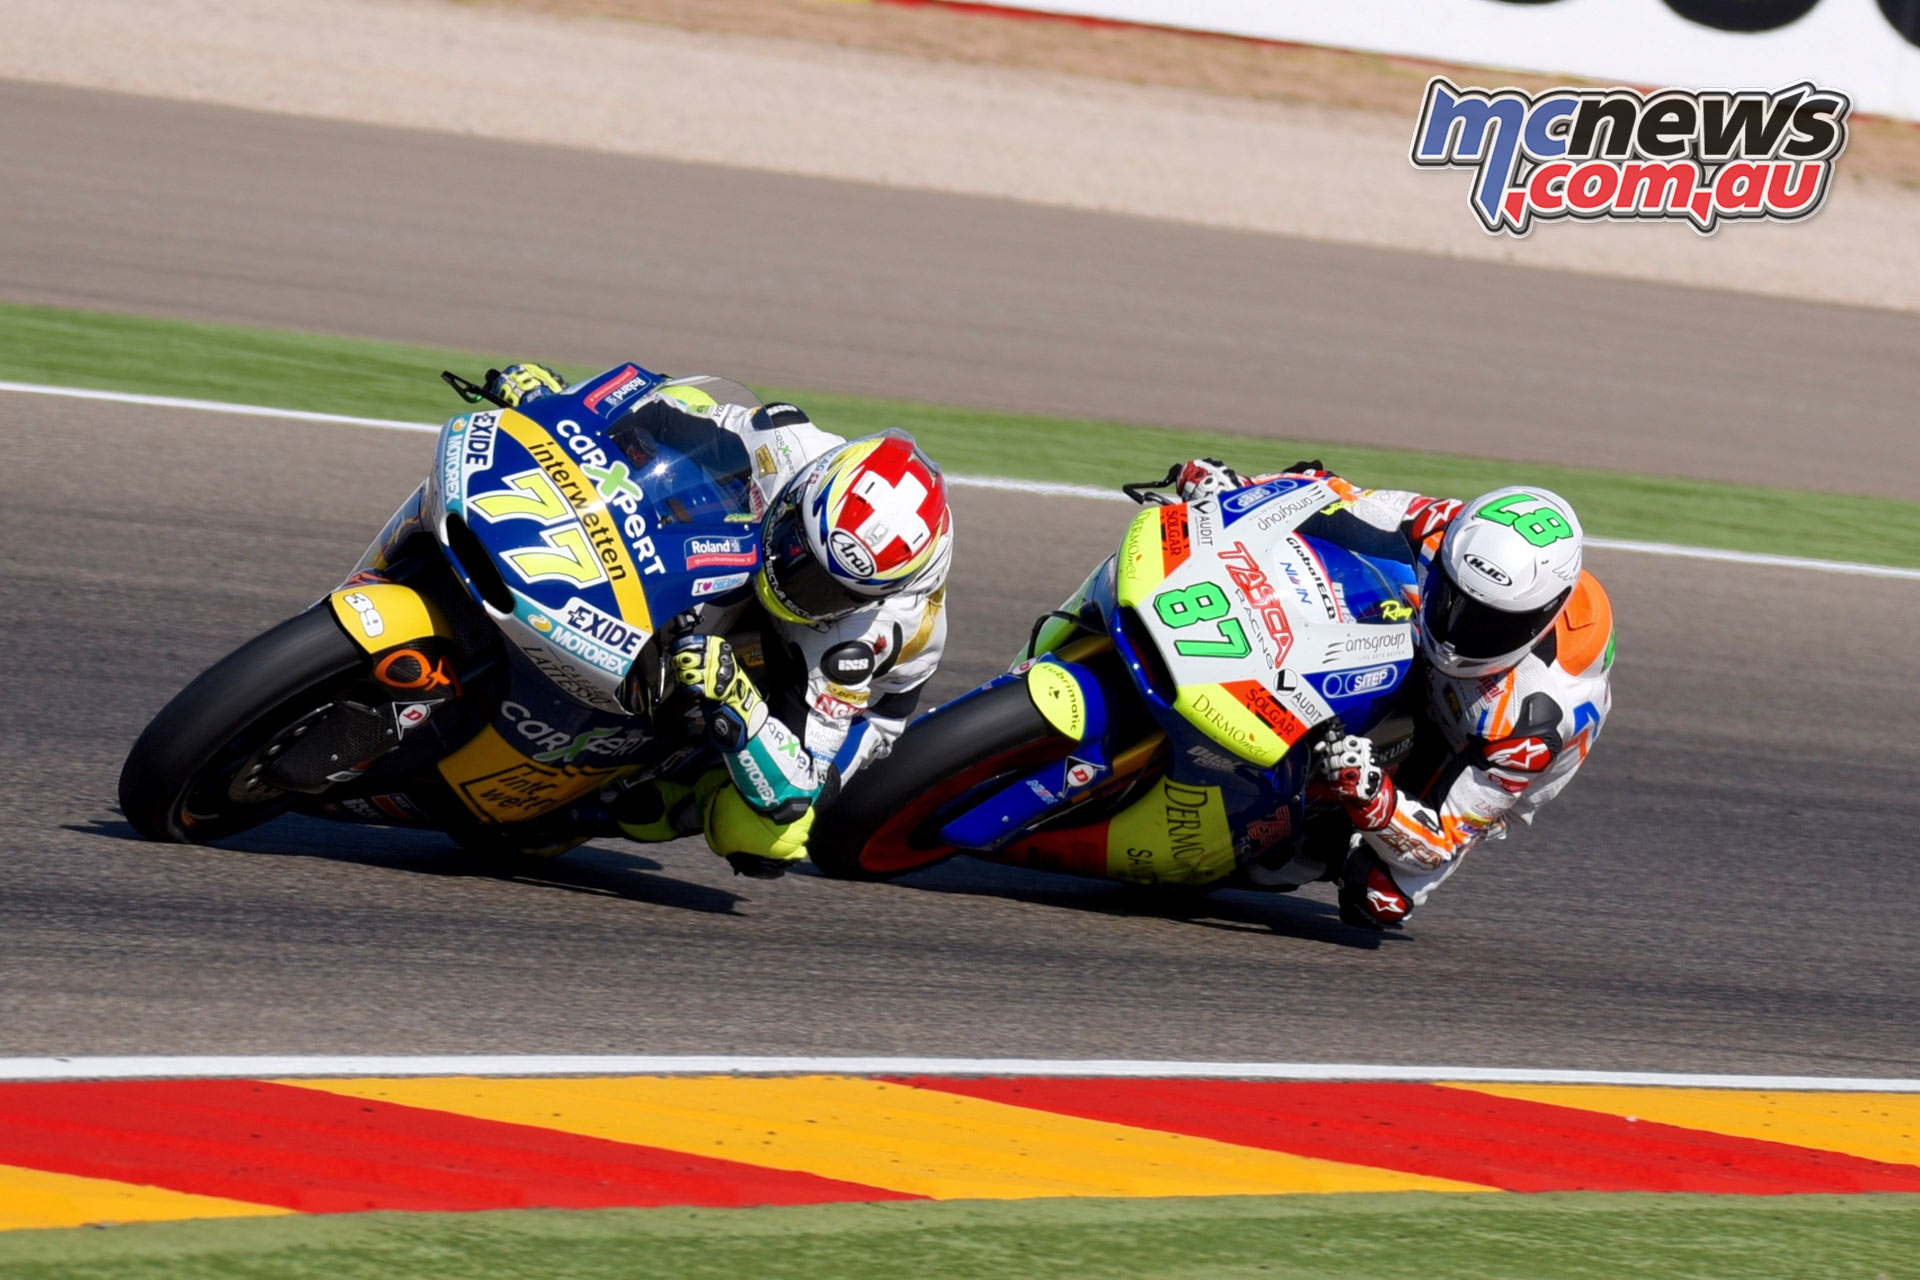 Remy Gardner #87 battling with Dominique Aegerter #77 – Image by Tasca Racing